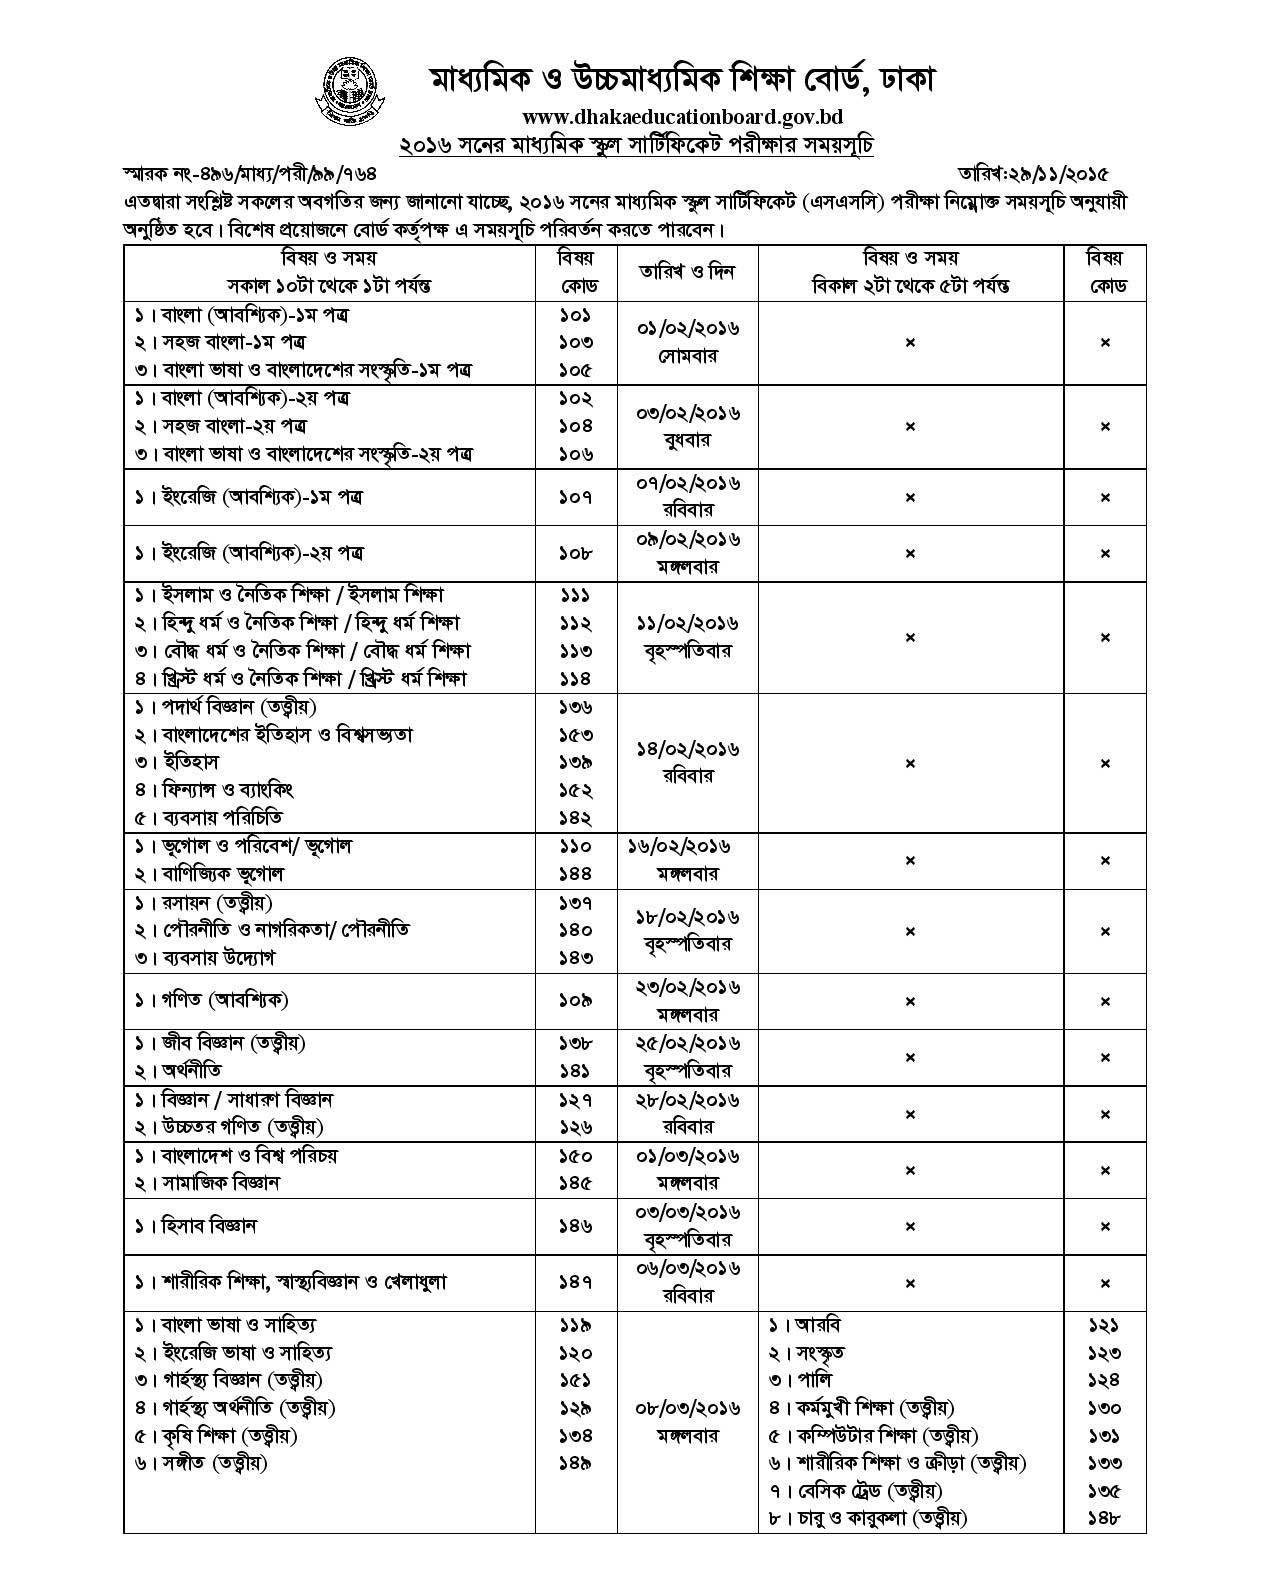 SSC Exam Routine 2016 Of Bangladesh